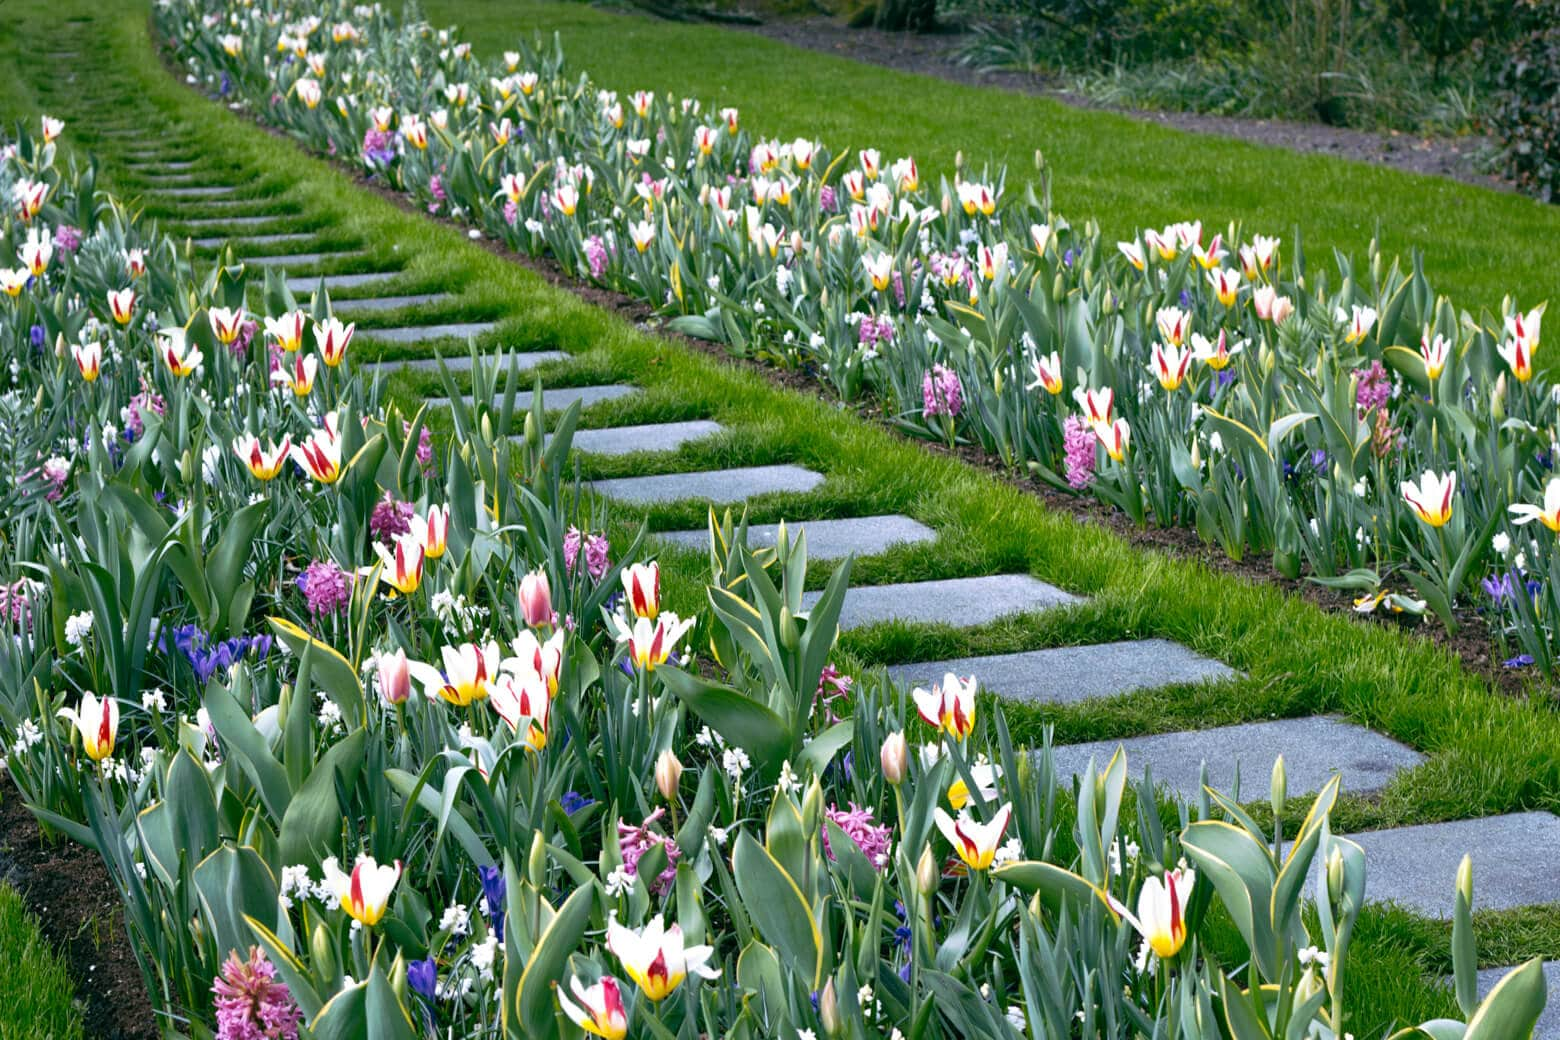 Path Lined with Tulips at the Flower Festival